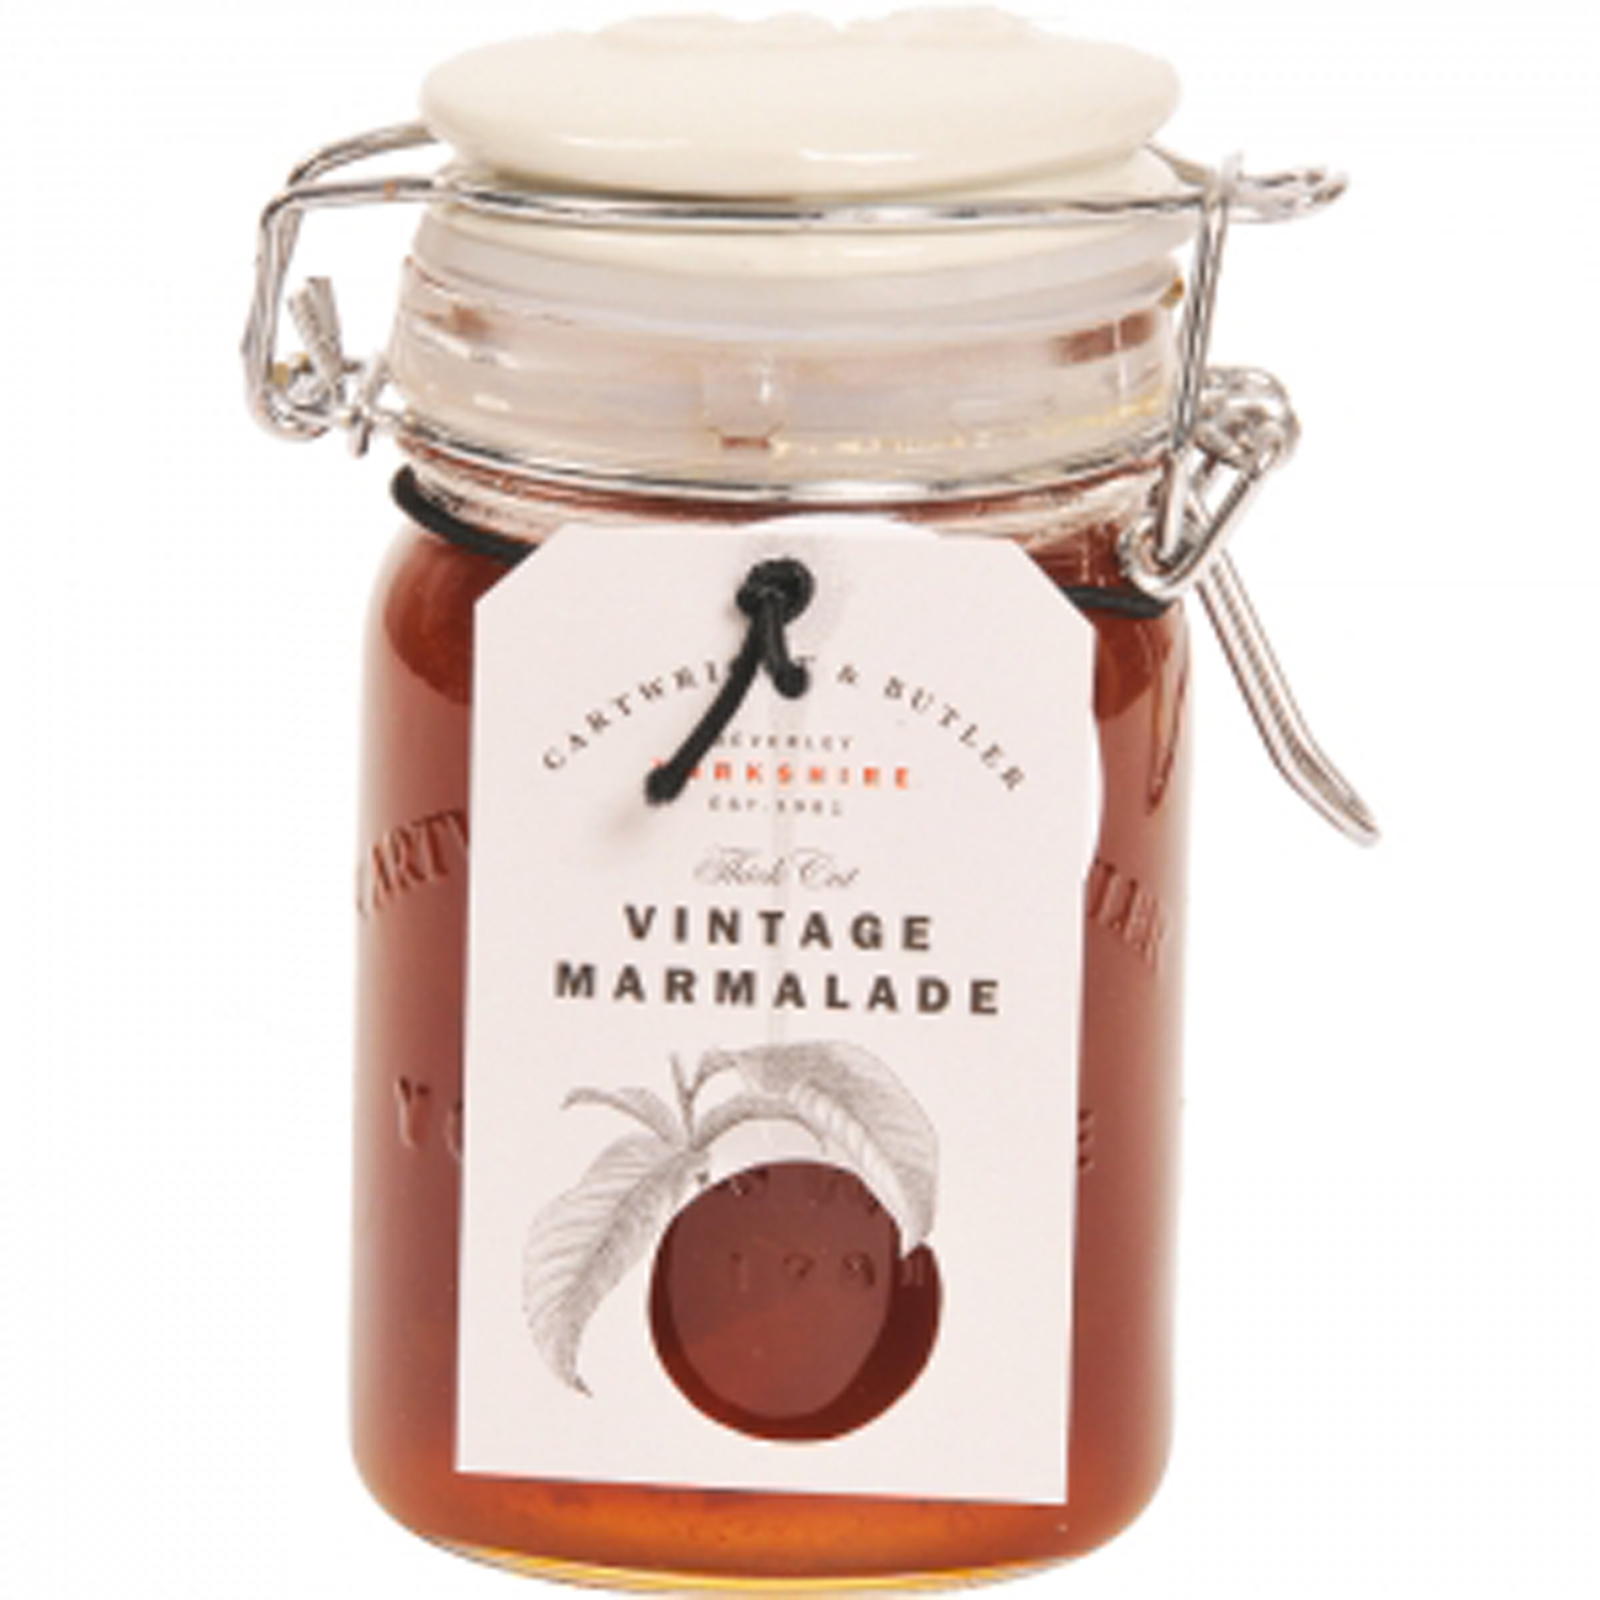 Thick Cut Vintage Marmalade by Cartwright & Butler